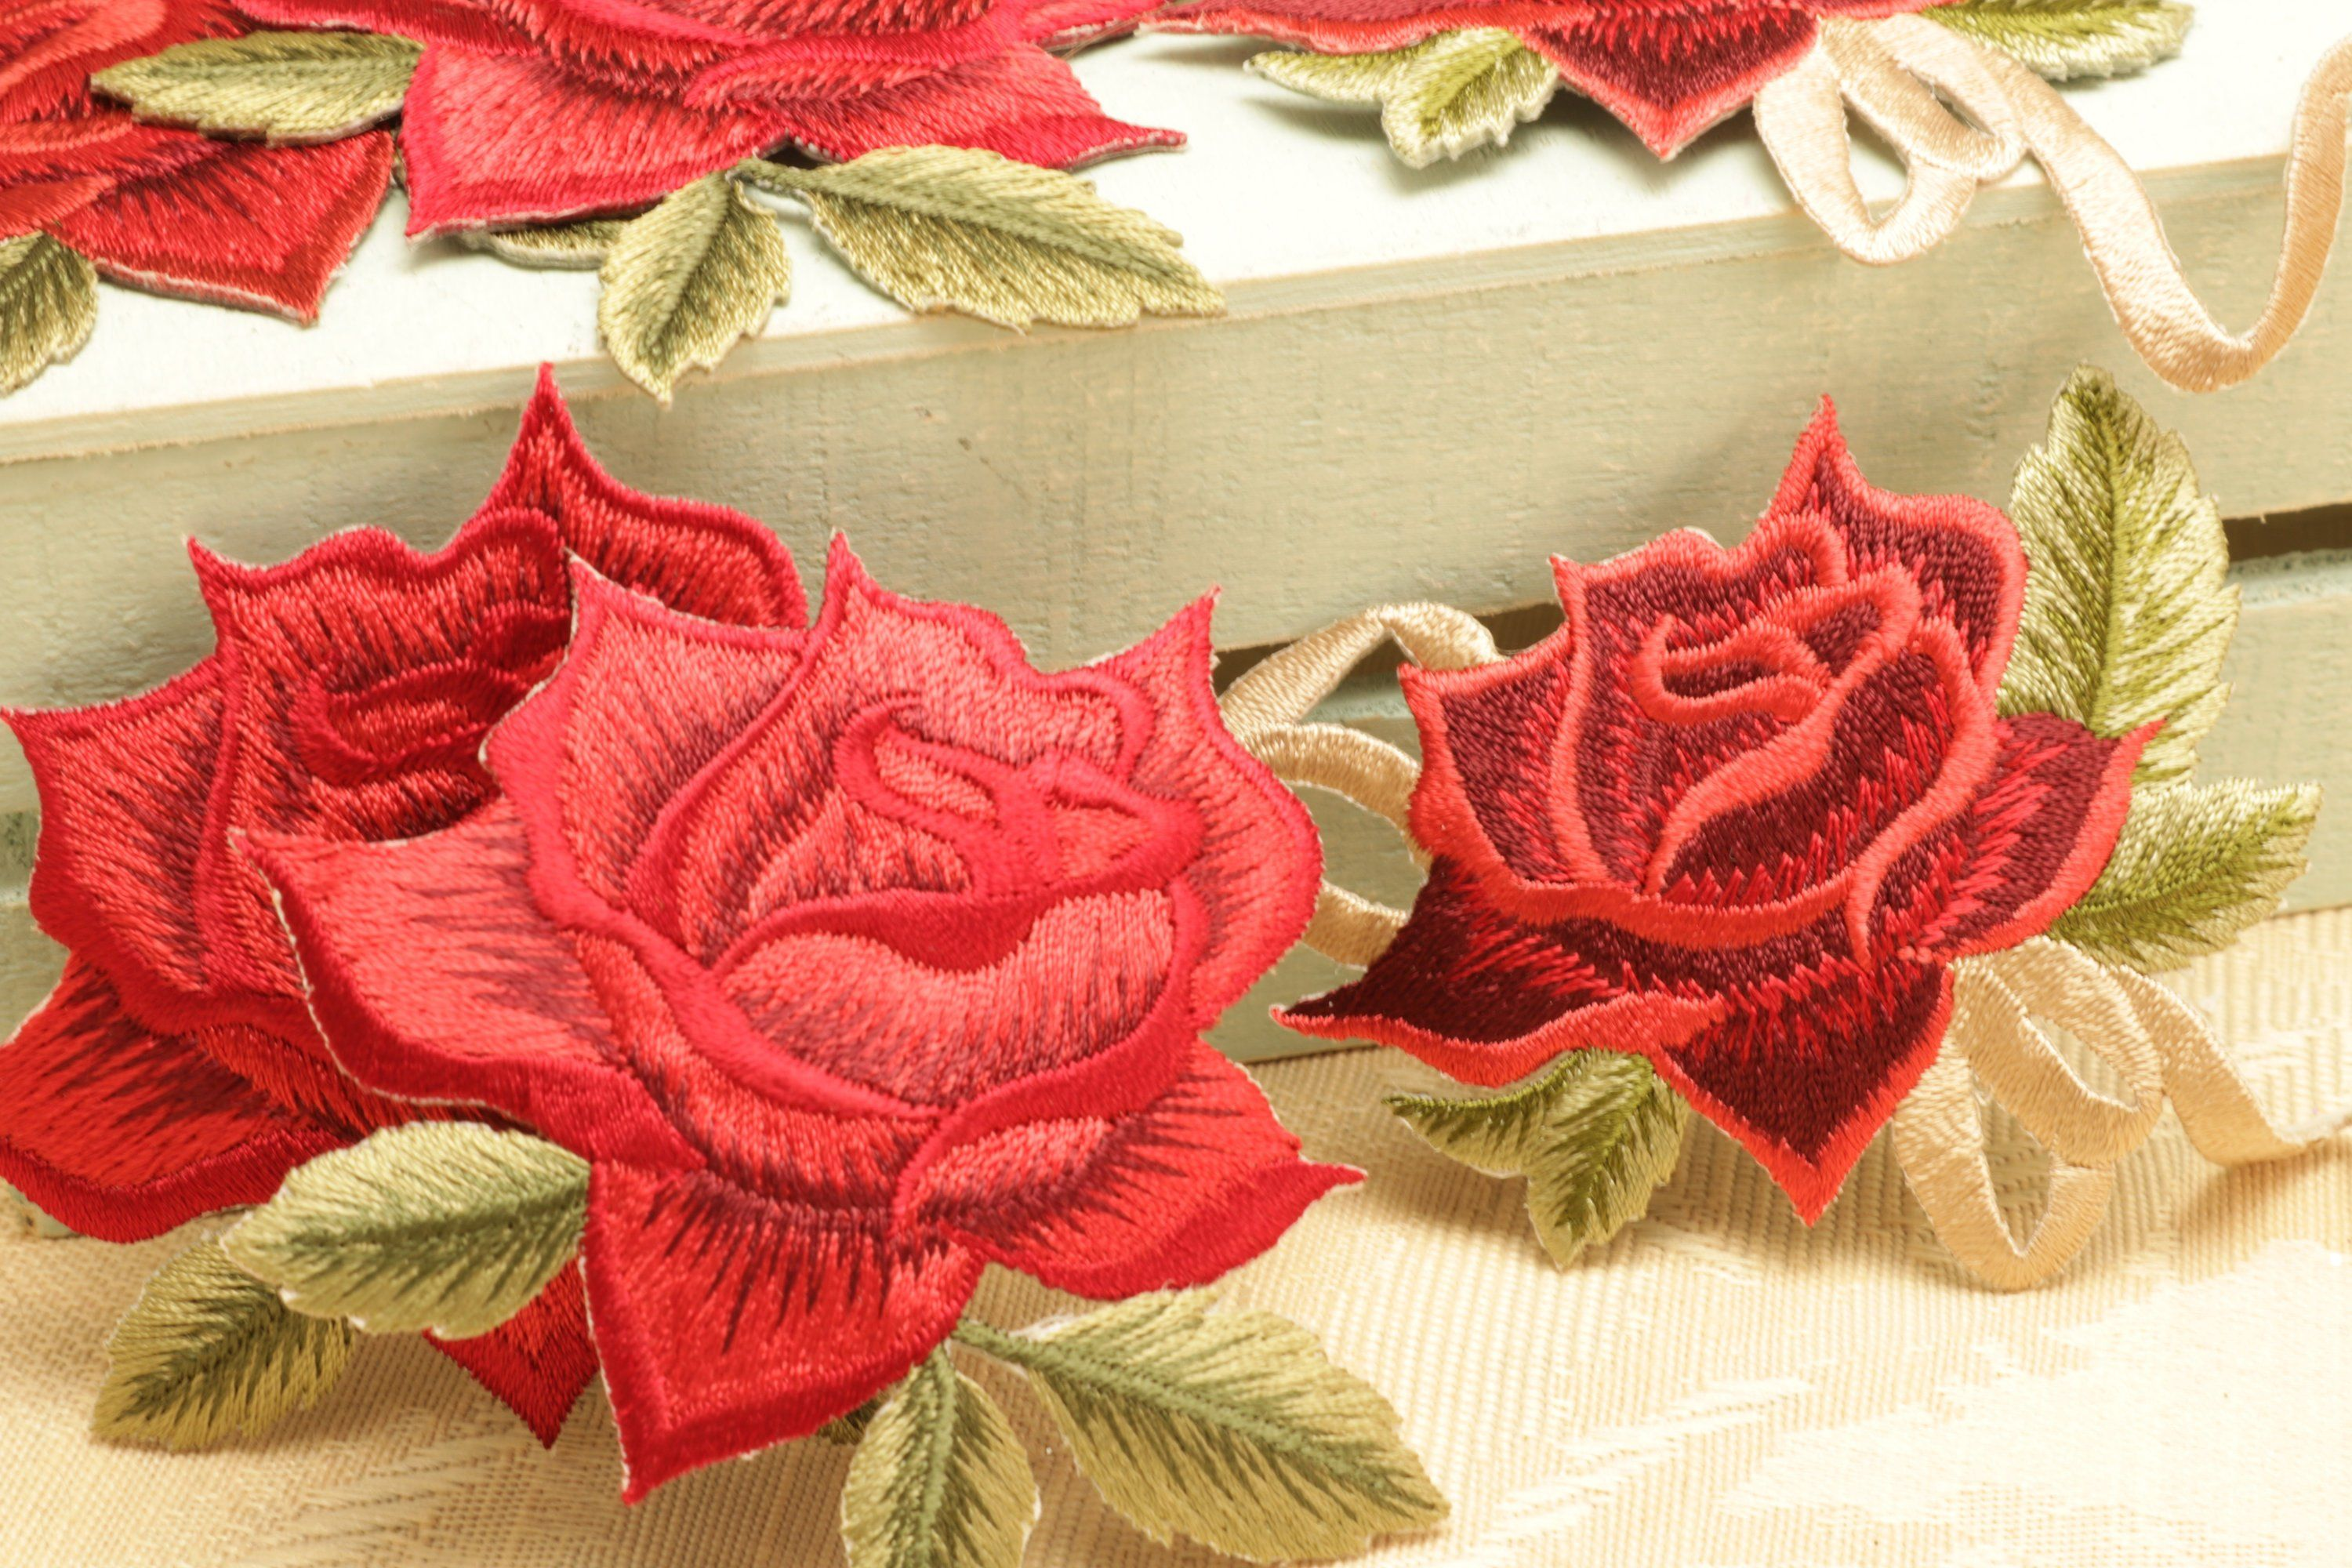 Applique Fabric Roses Embroidered New Iron On Sew On Patch Red Pink Green Sold Separately By Craftyscr Fabric Roses Applique Fabric Sew On Patches